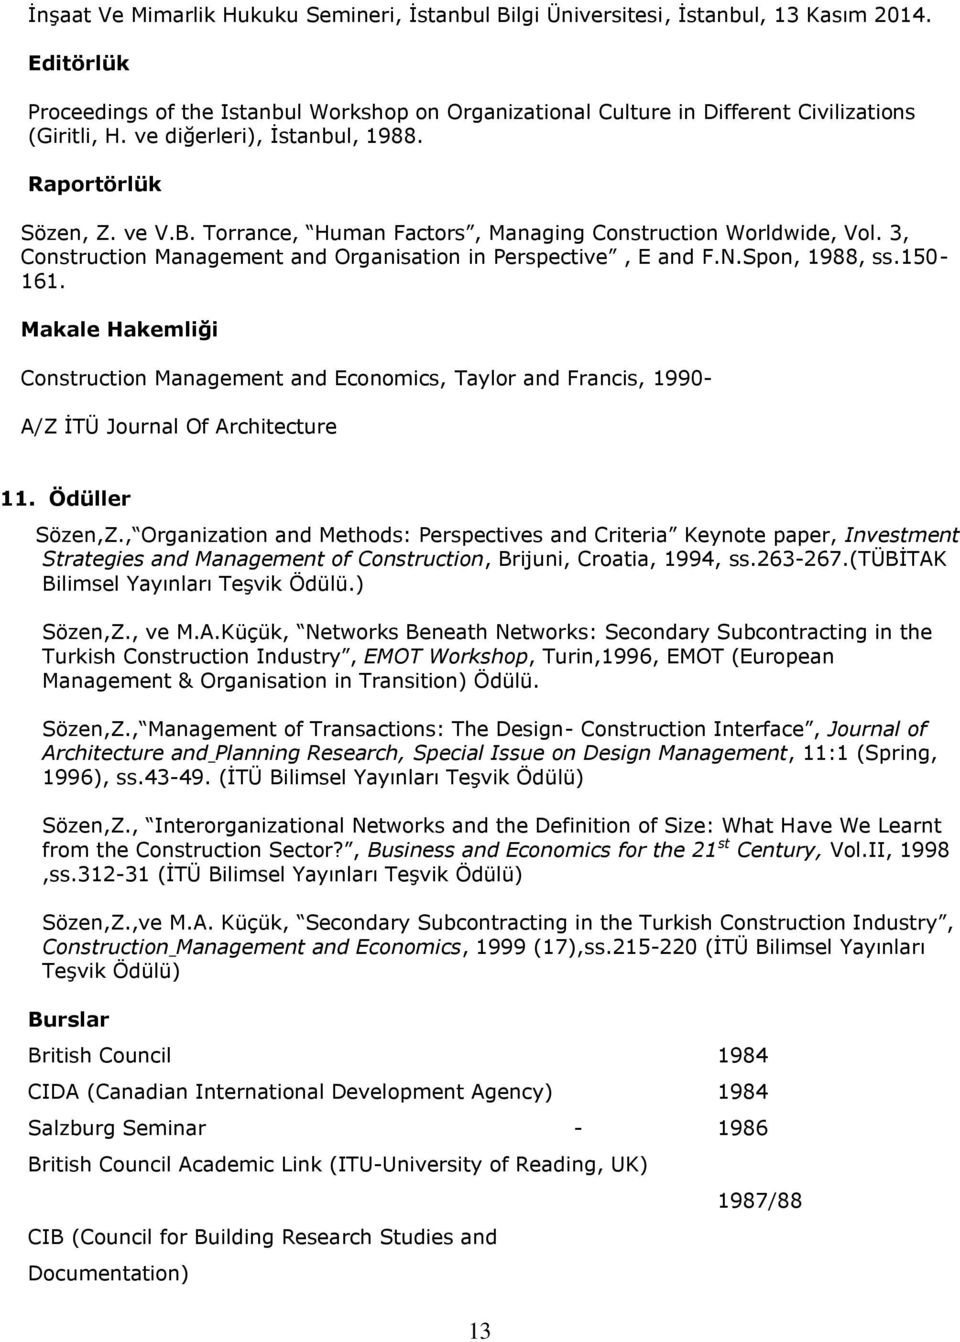 Torrance, Human Factors, Managing Construction Worldwide, Vol. 3, Construction Management and Organisation in Perspective, E and F.N.Spon, 1988, ss.150-161.